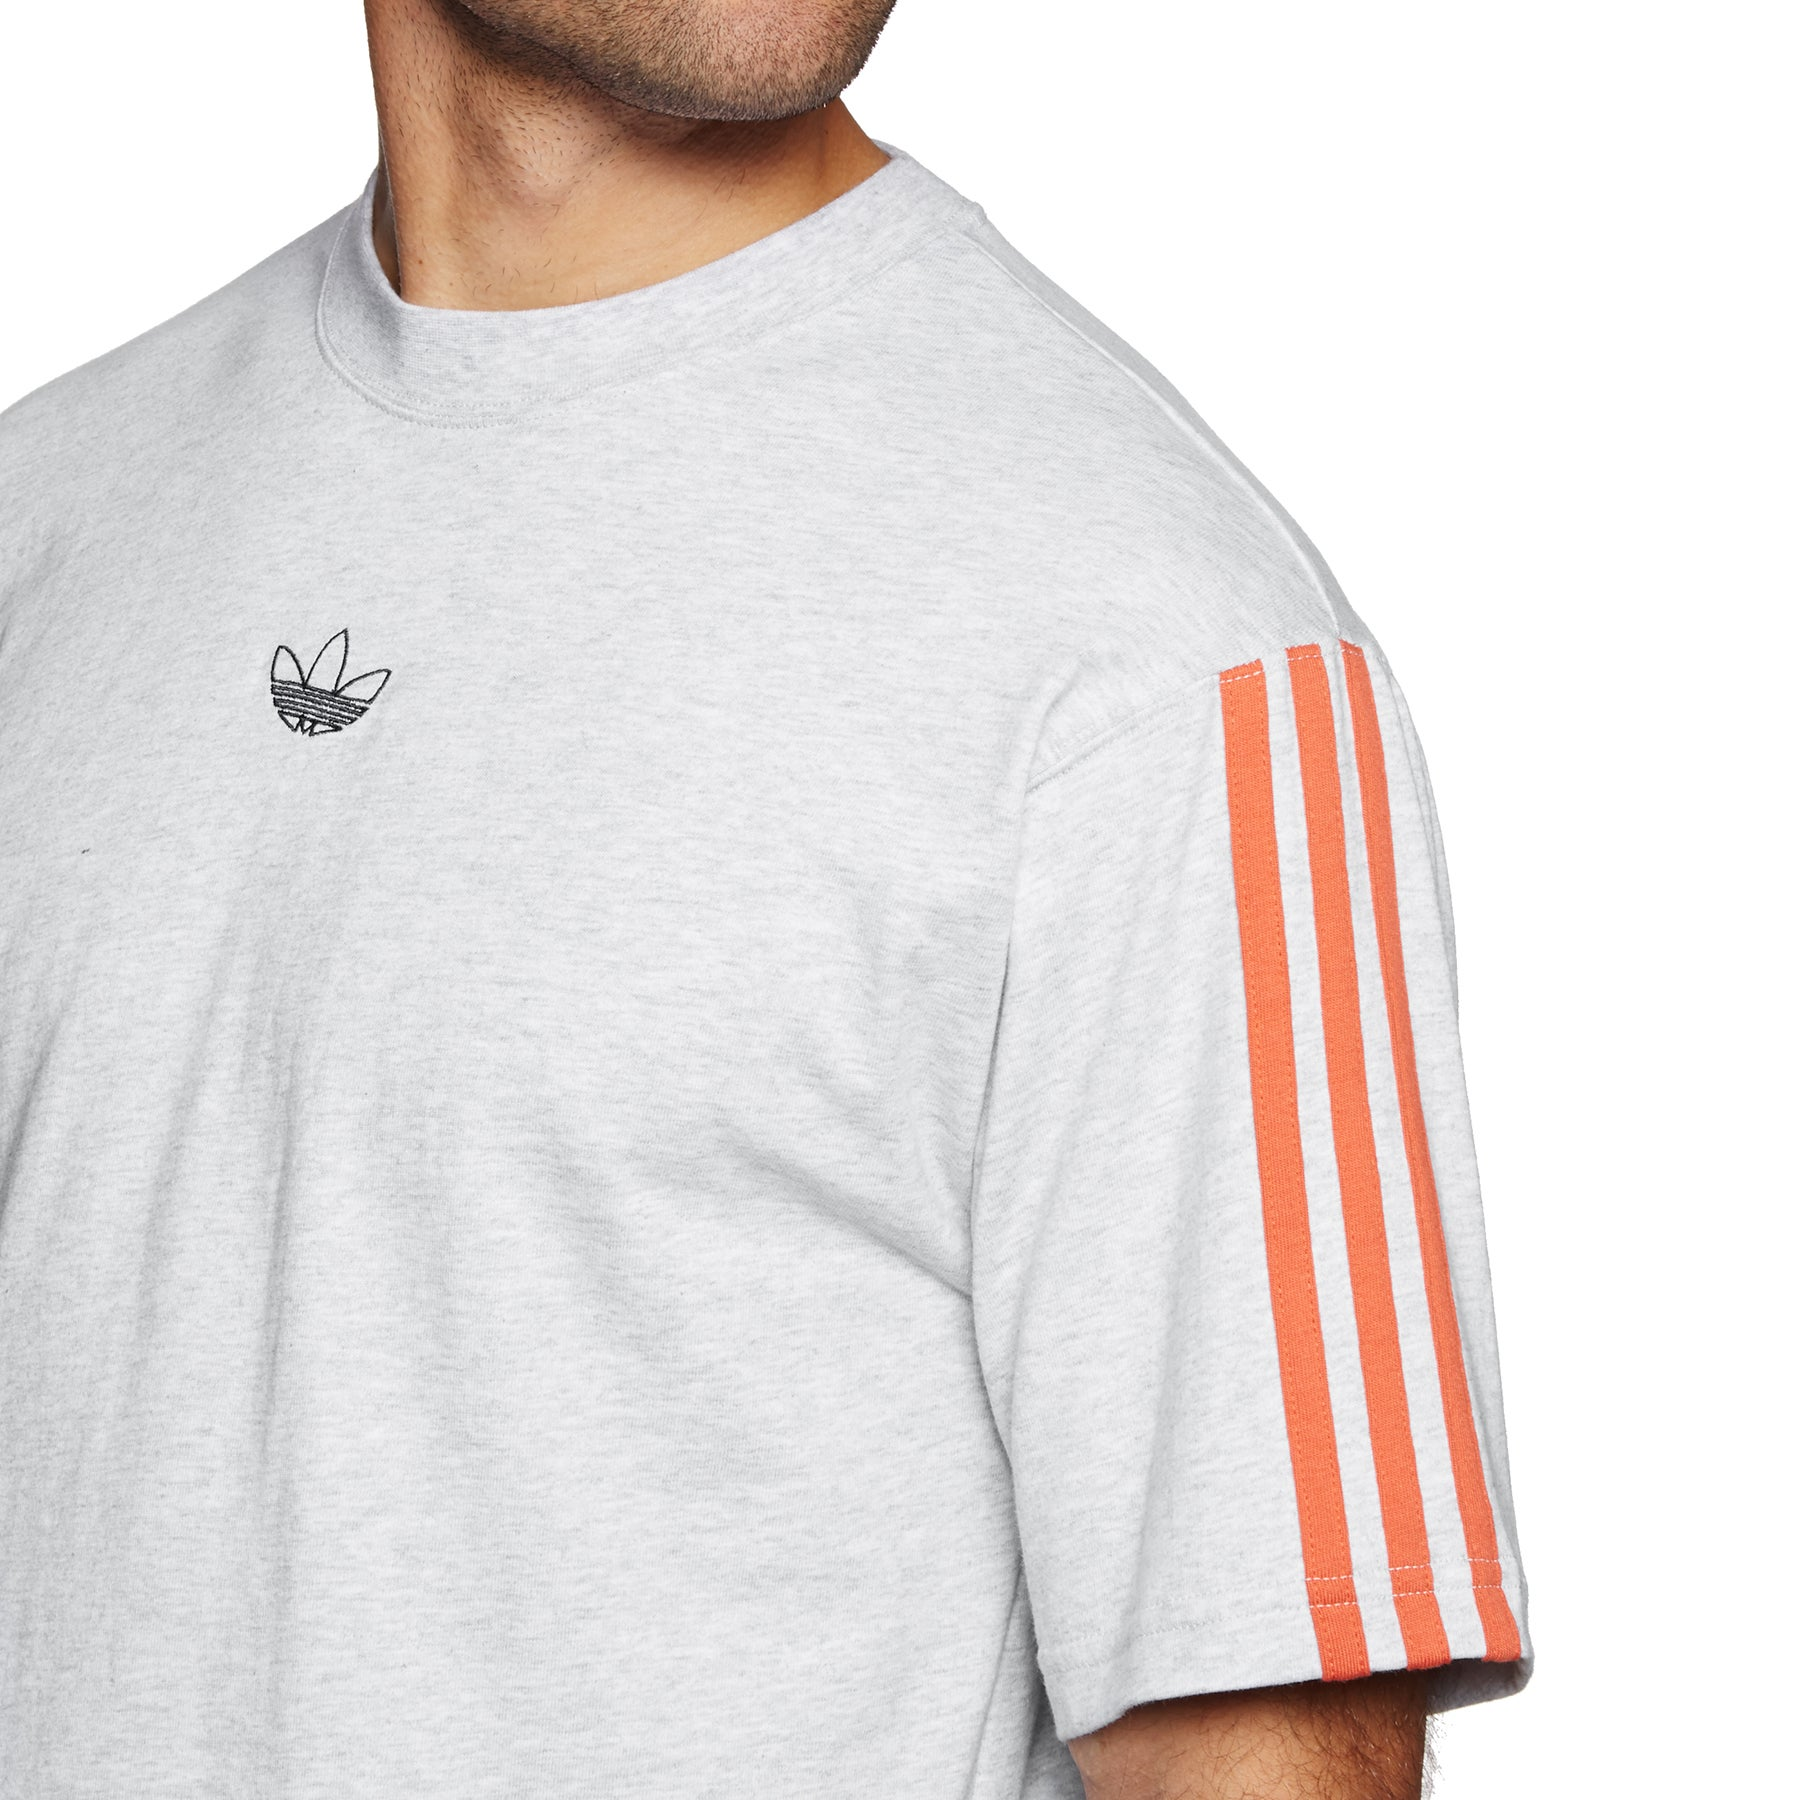 adidas originals FLOATING T Shirt light grey heatherraw